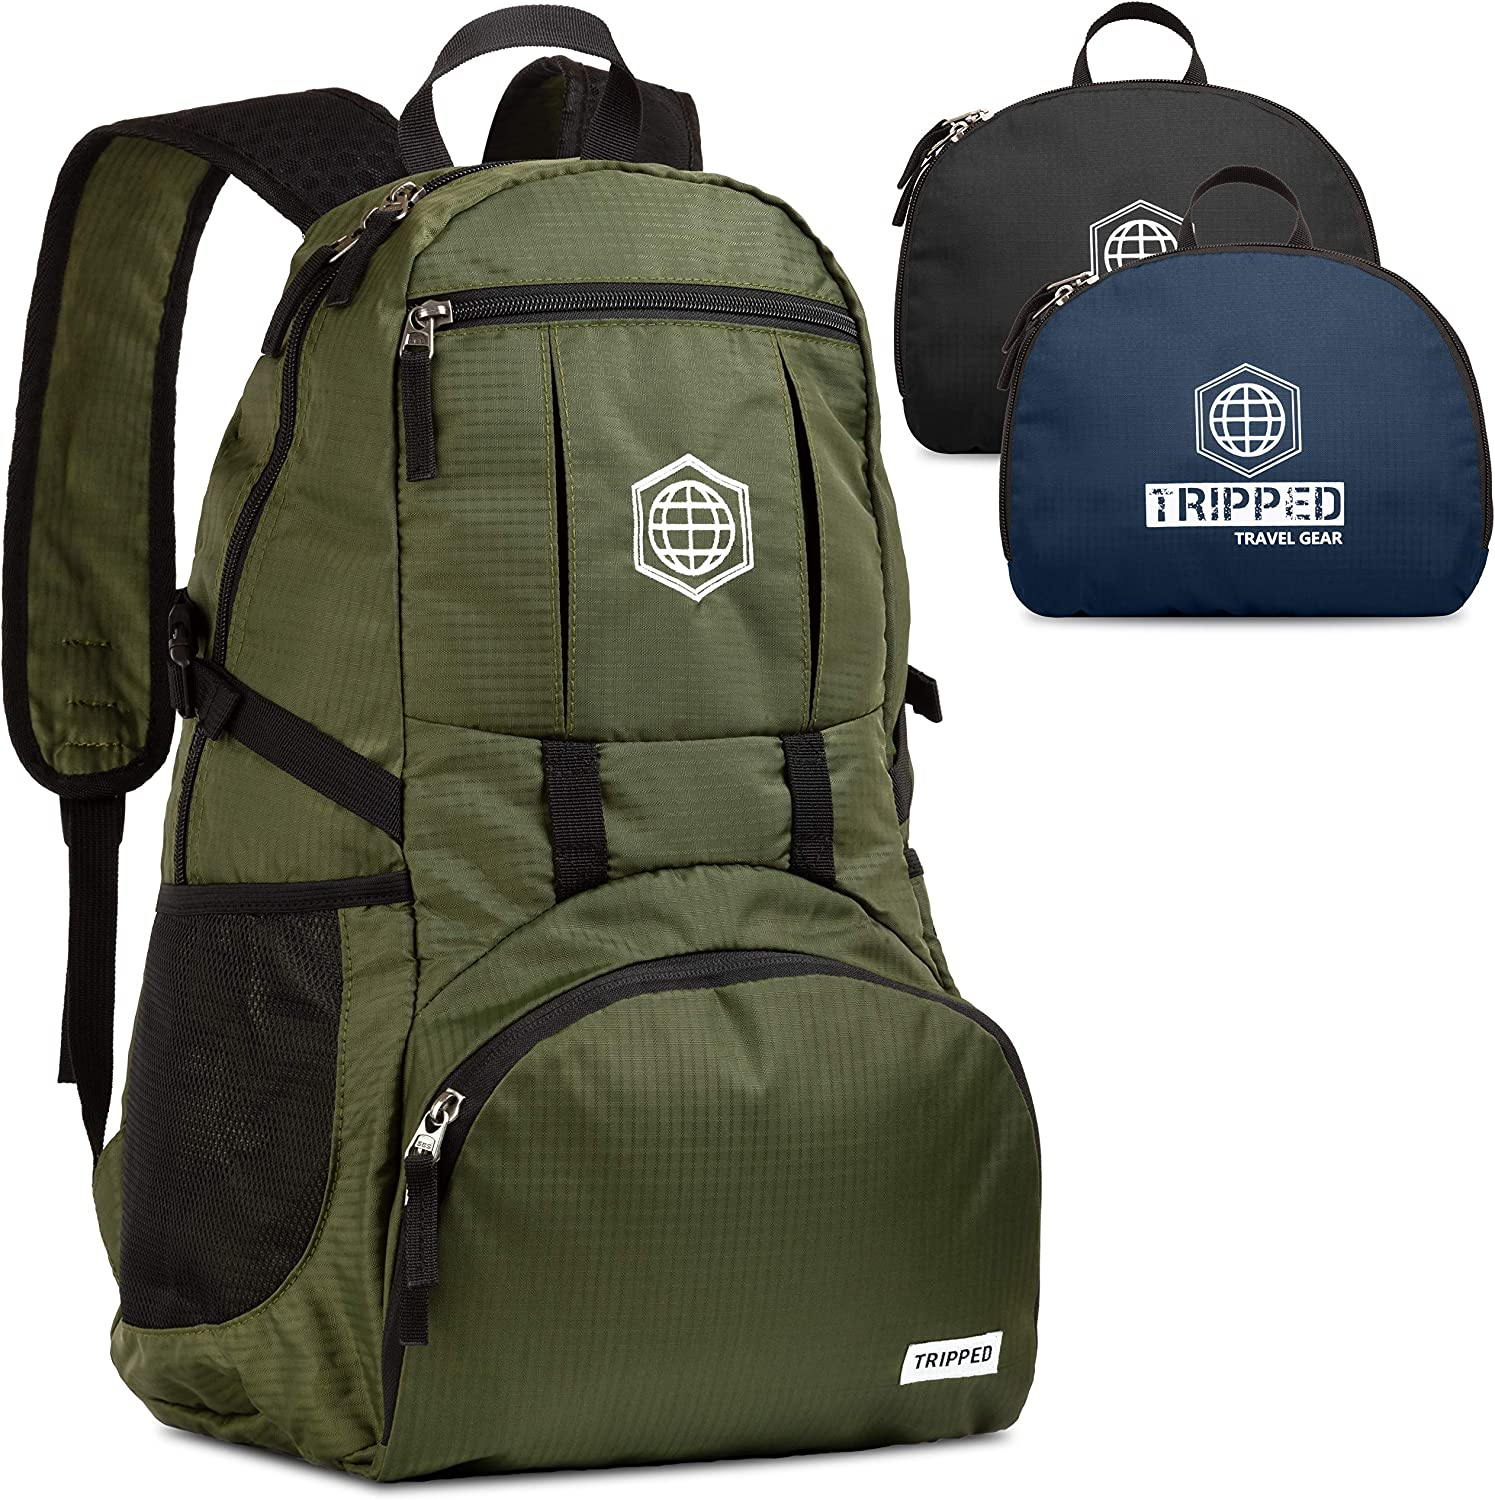 Traveling Backpack- Foldable Collapsible Lightweight Backpack for Travel